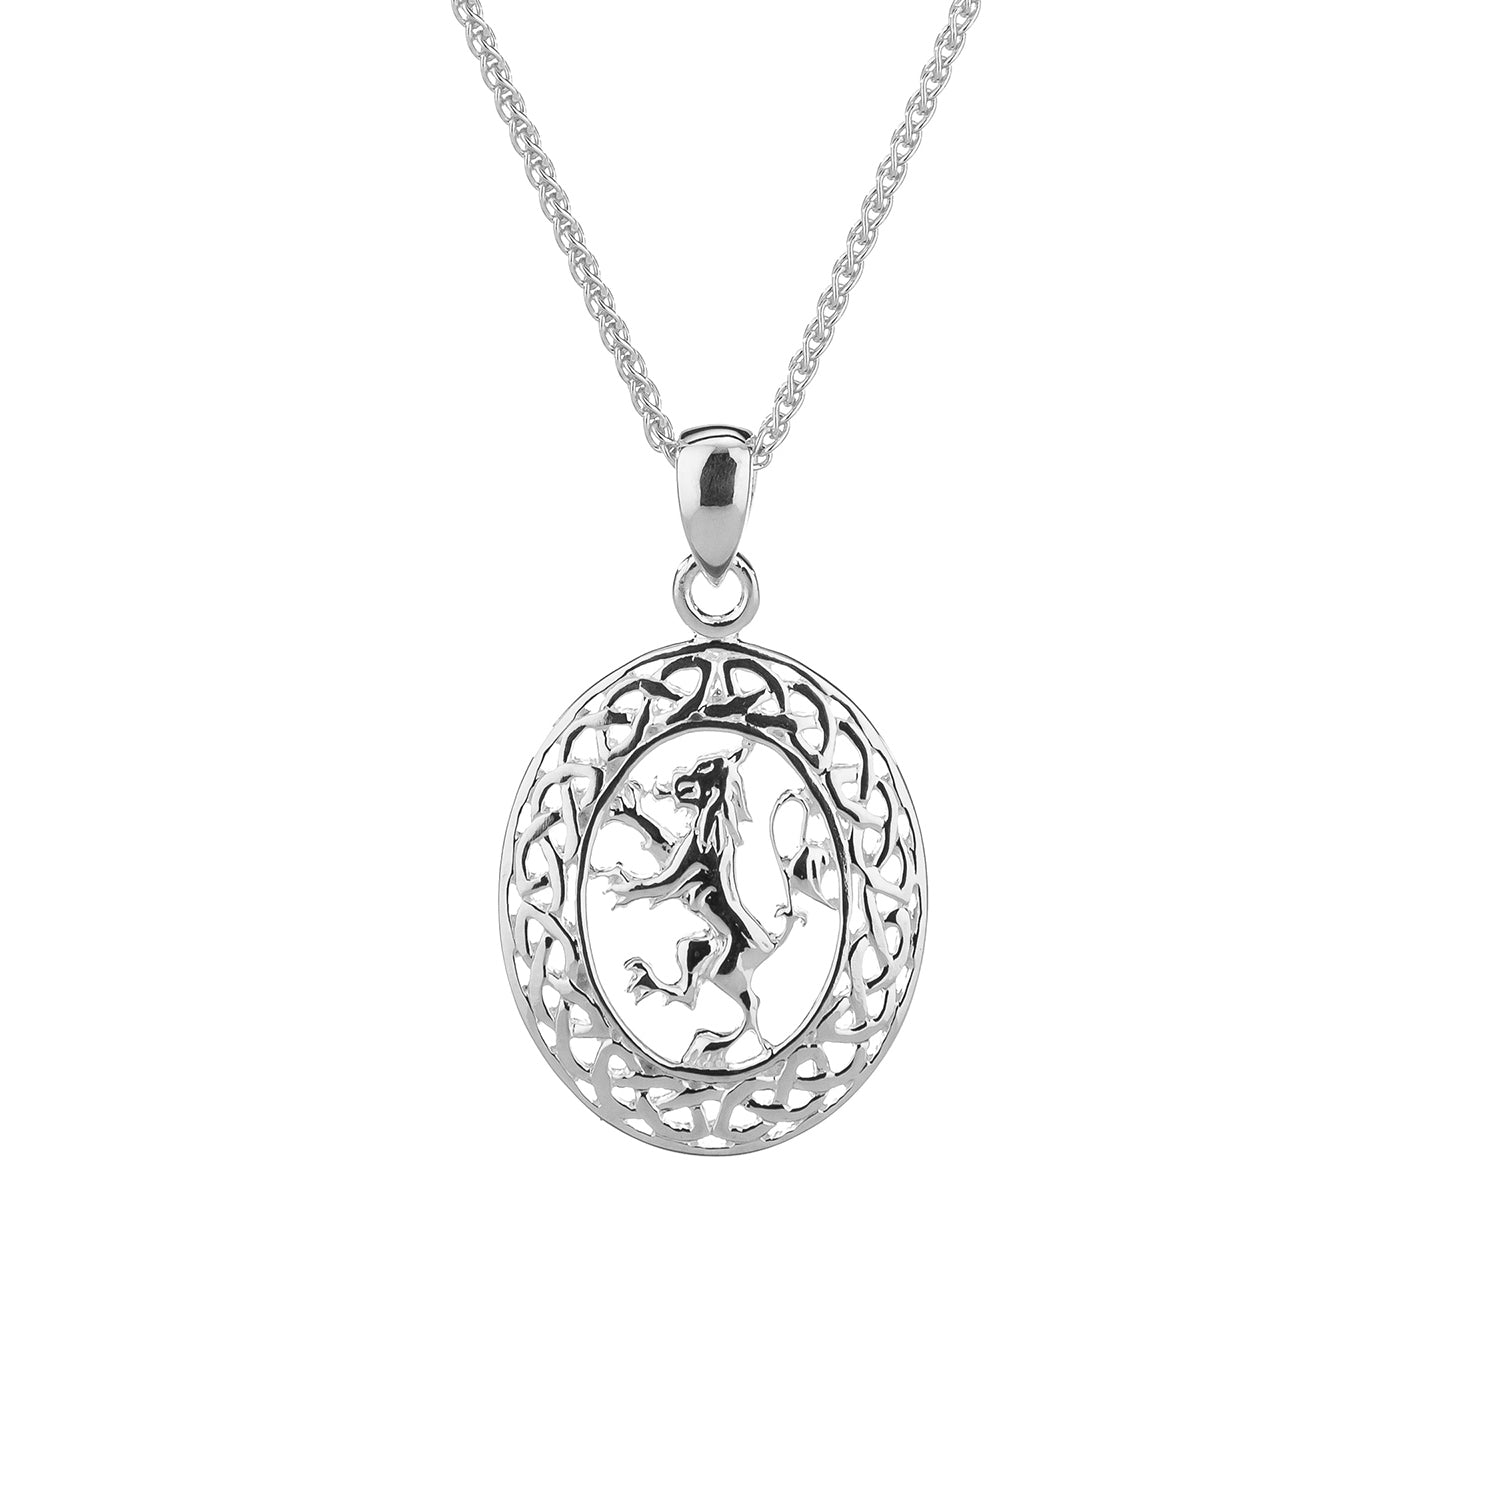 Pendant Lion Rampant Pendant Oval from welch and company jewelers near syracuse ny